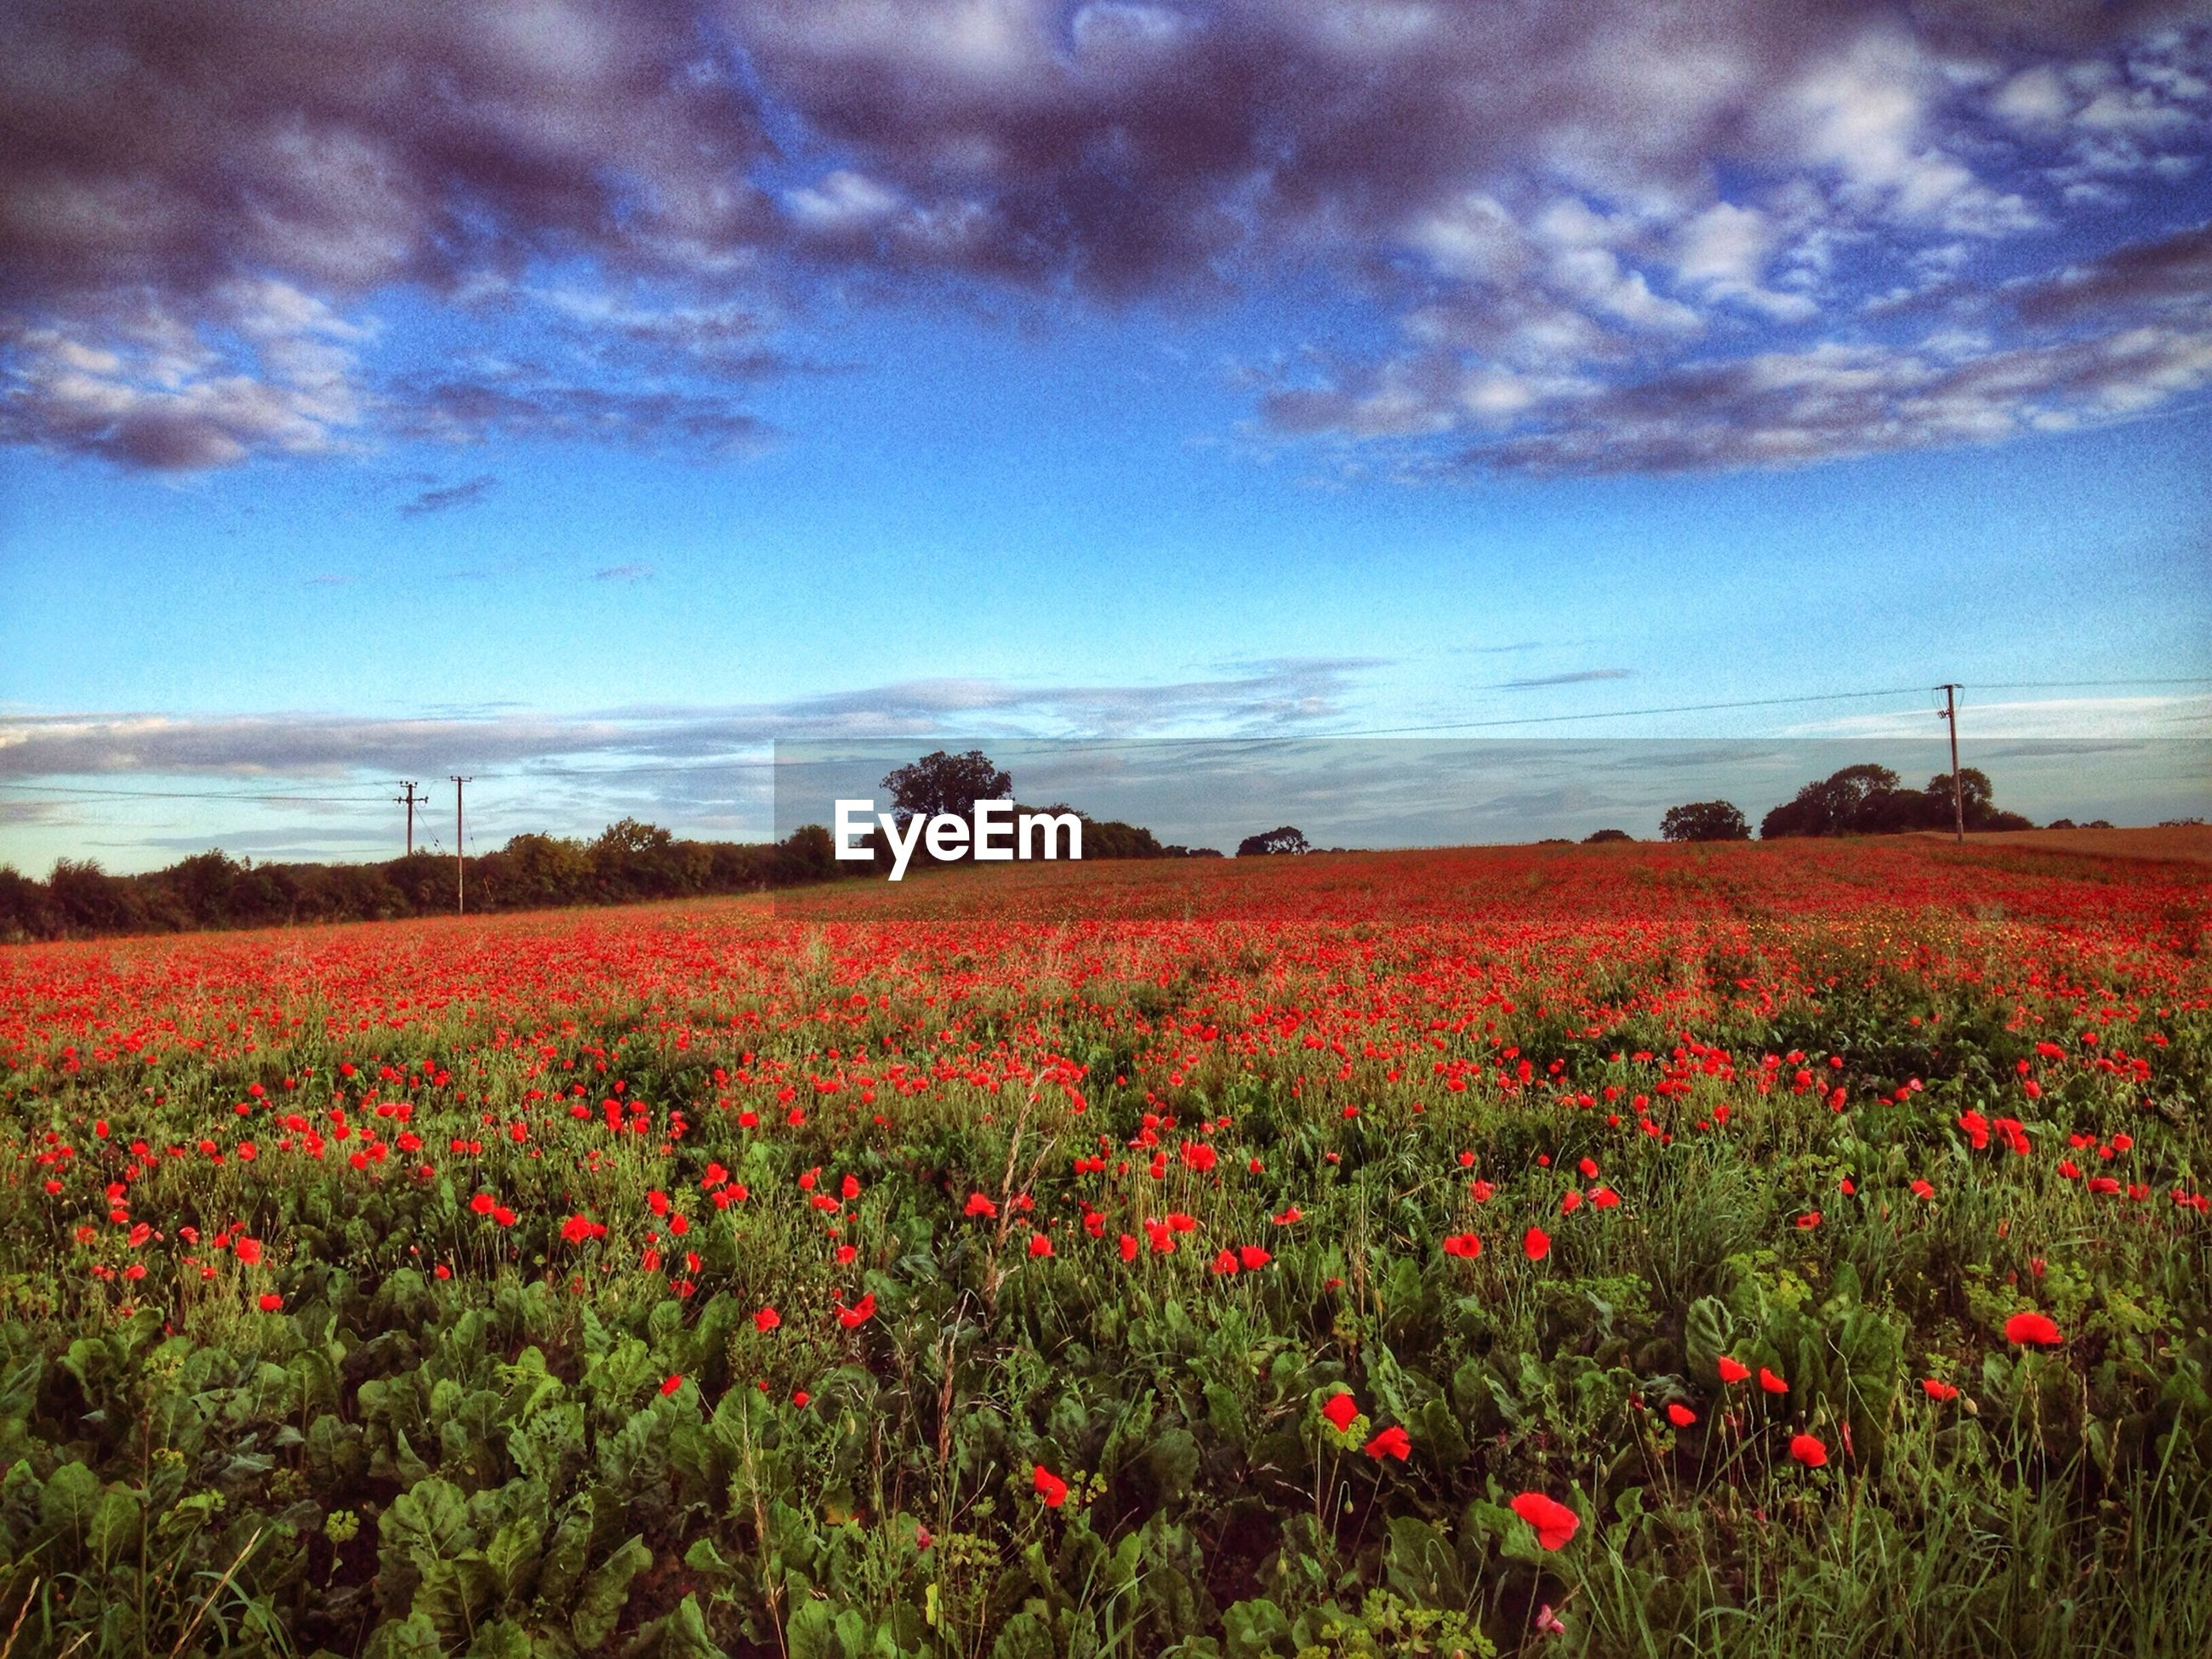 Scenic view of red flowering field against cloudy sky